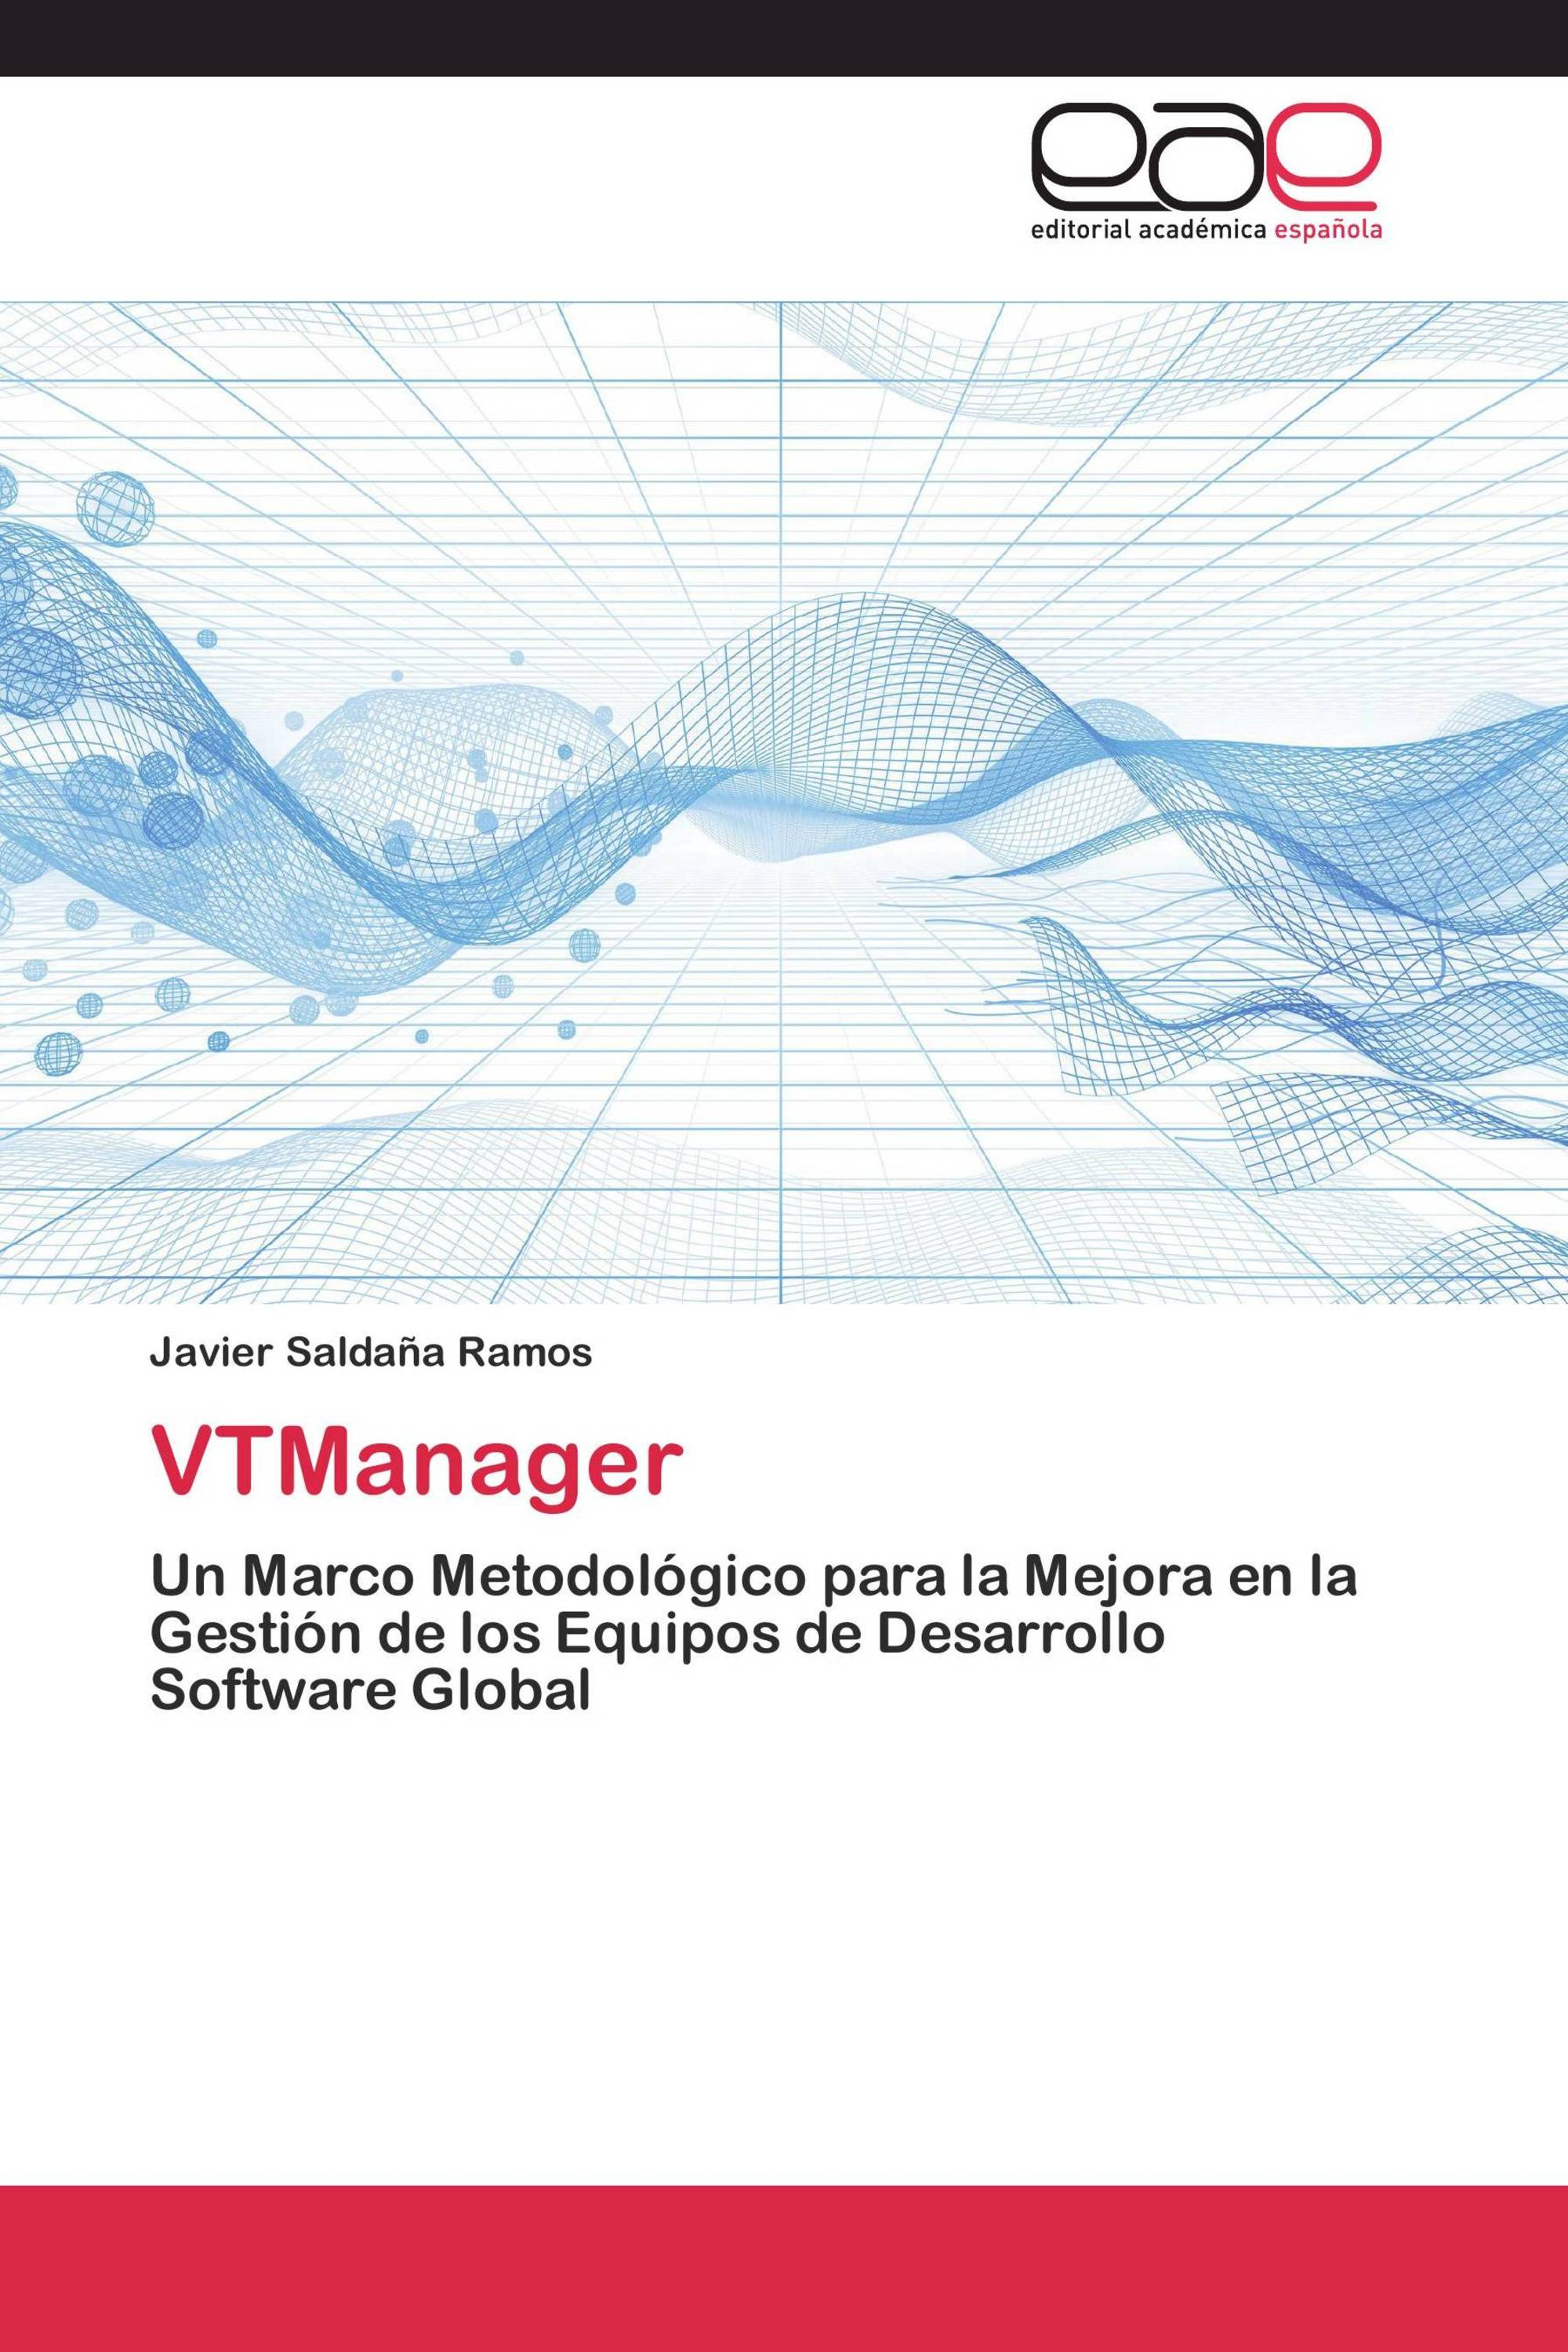 VTManager